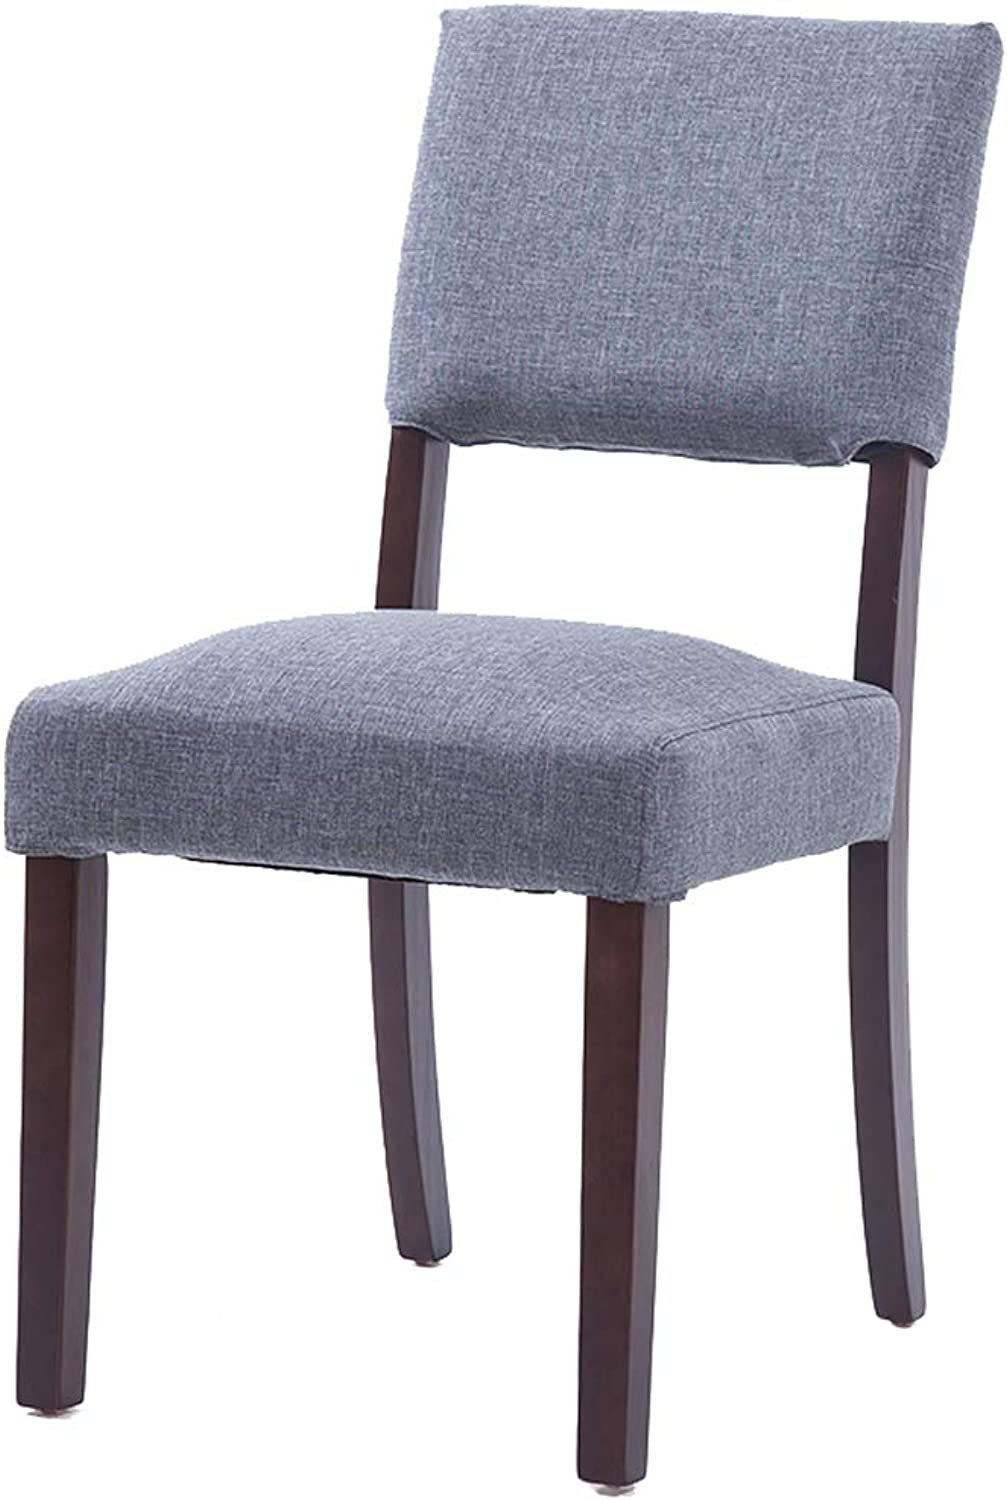 Lxn Simple Casual Dining Chair Brown Solid Wood Dining chairl, Washable Fabric Upholstered,Perfect for Dining and Living Room,Counter, bar,Hotels,Office - 1PCS